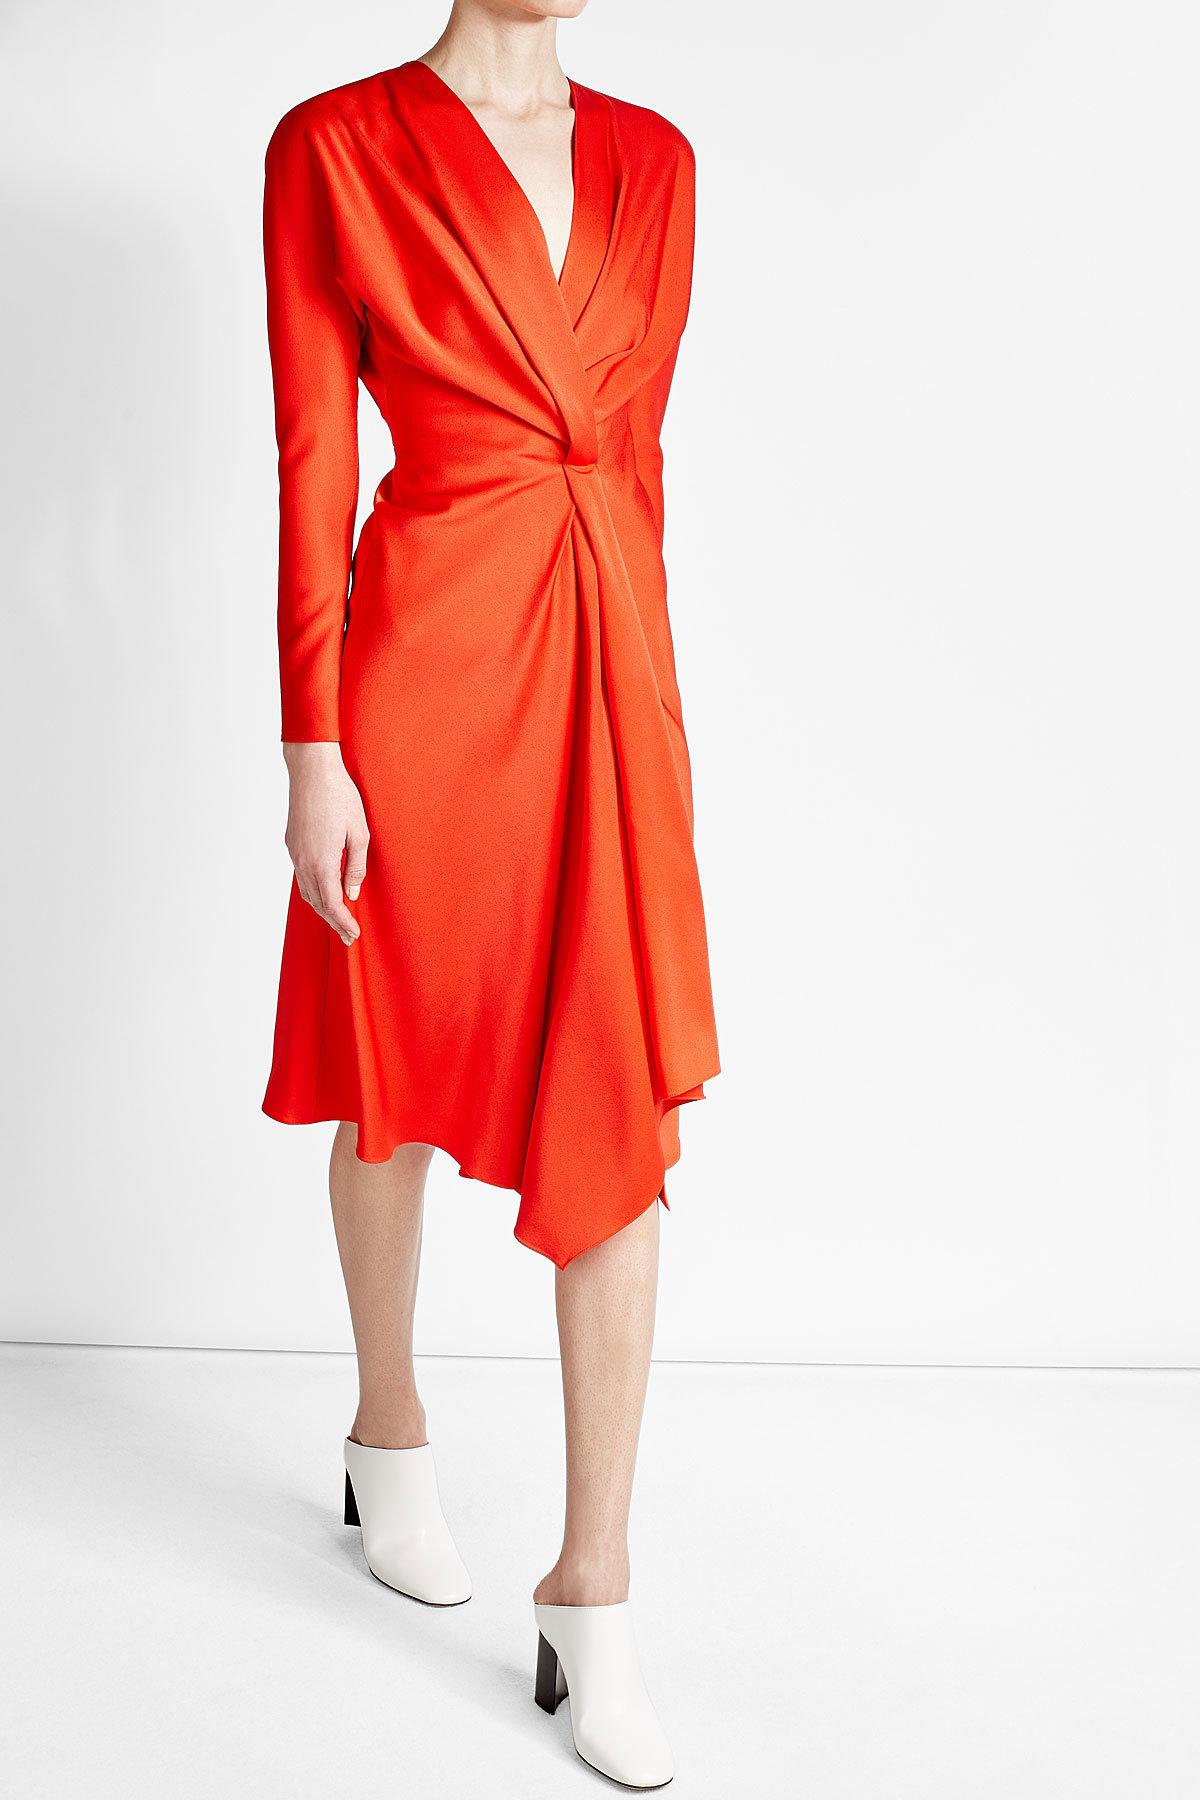 Victoria Beckham Crepe Dress In Red Lyst